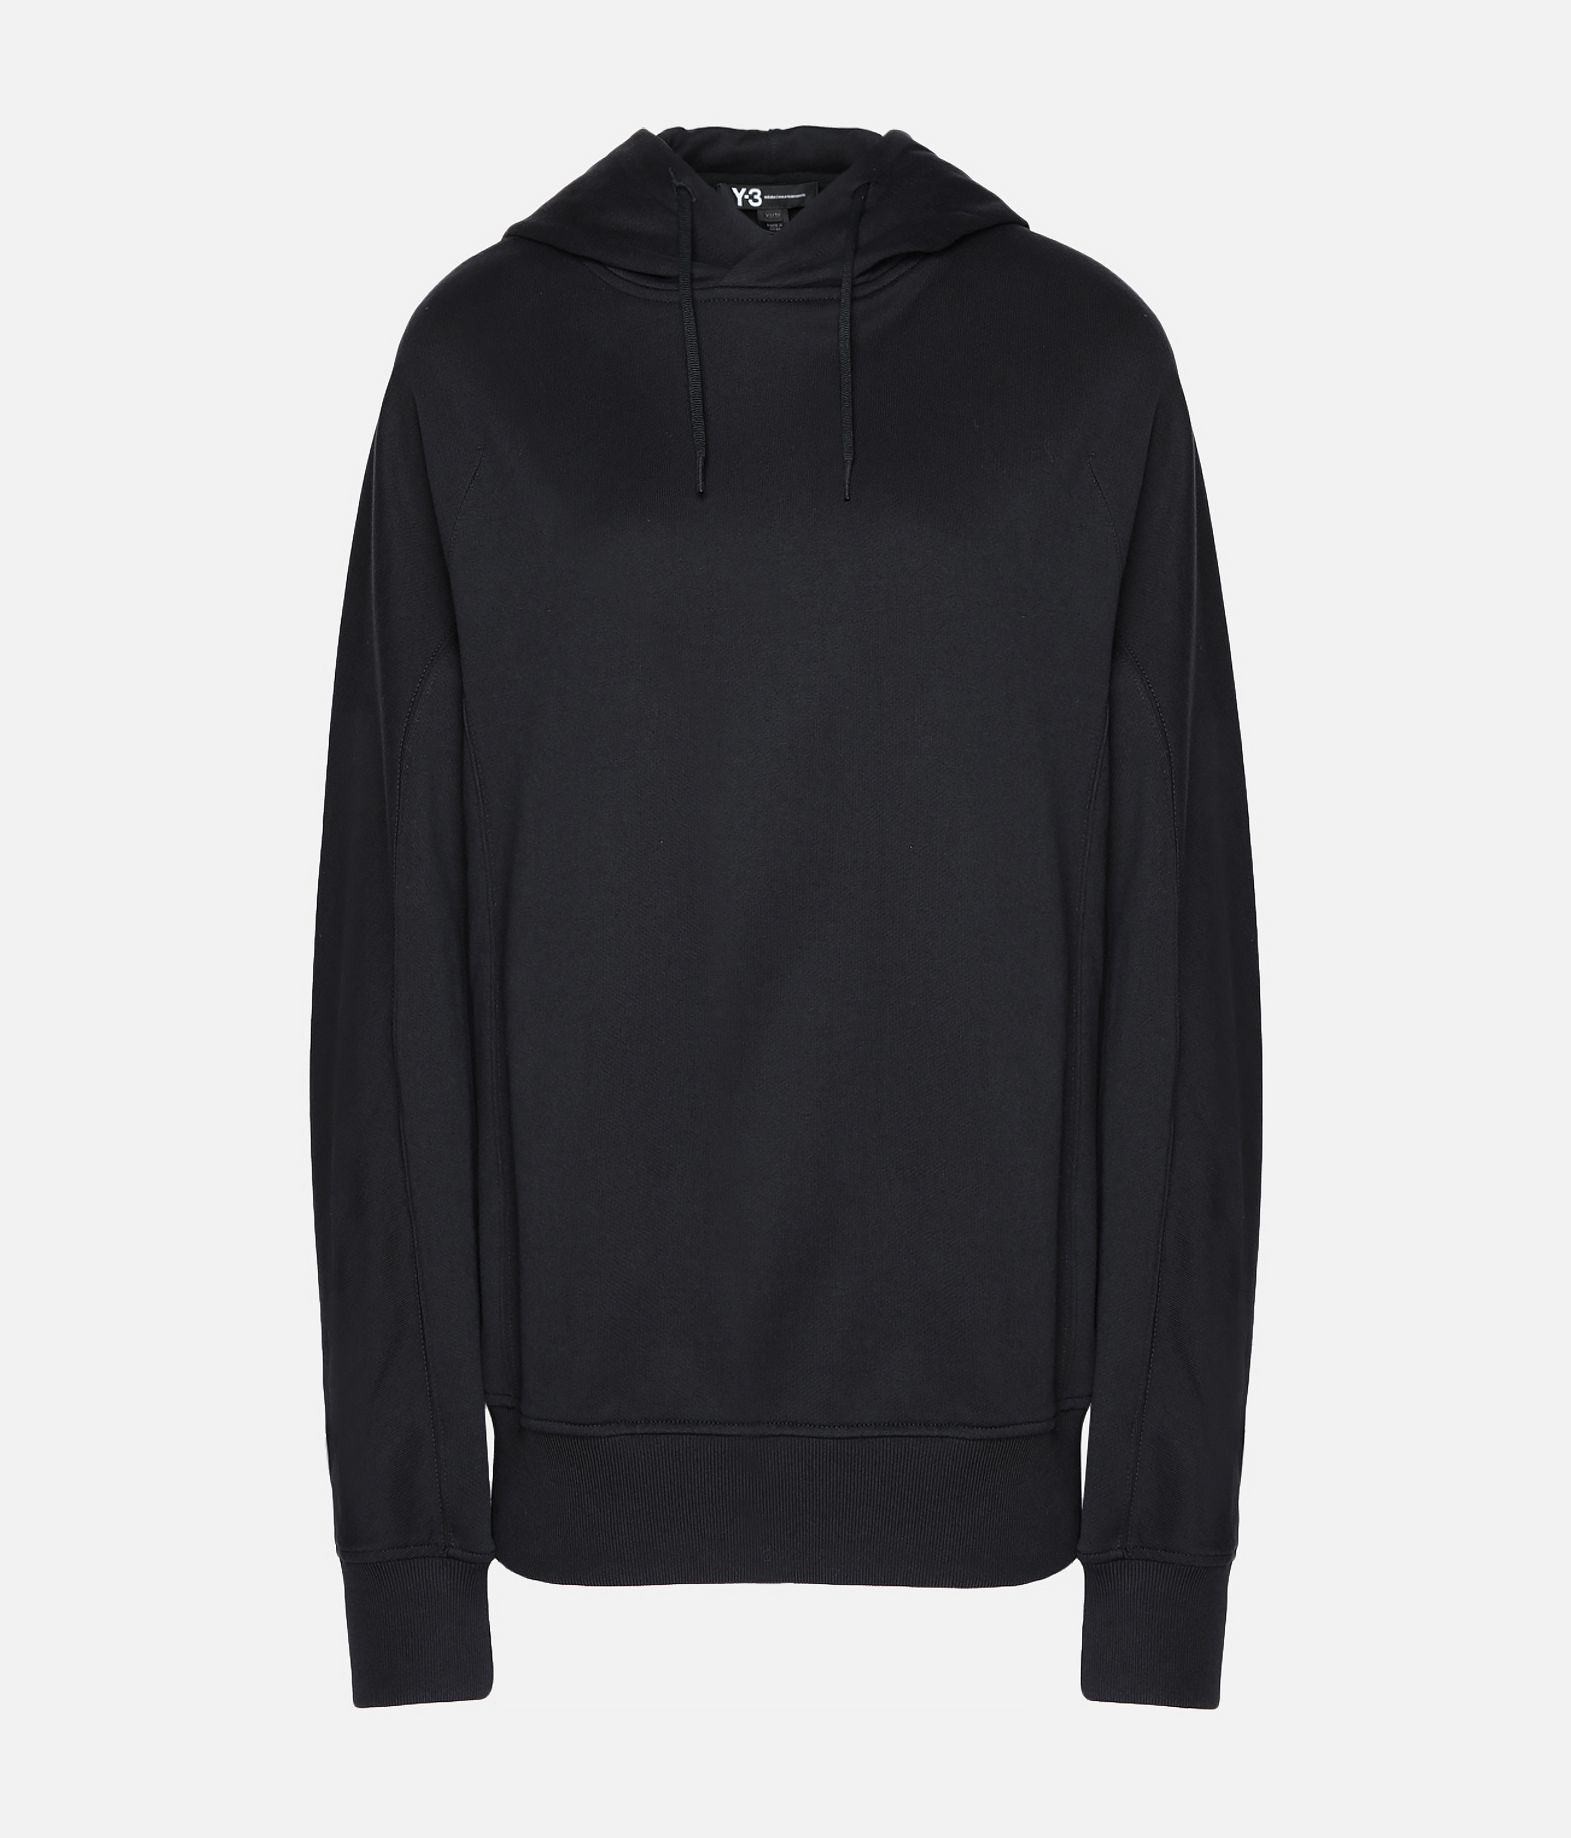 Y-3 Y-3 Classic Hoodie Hooded sweatshirt Woman f